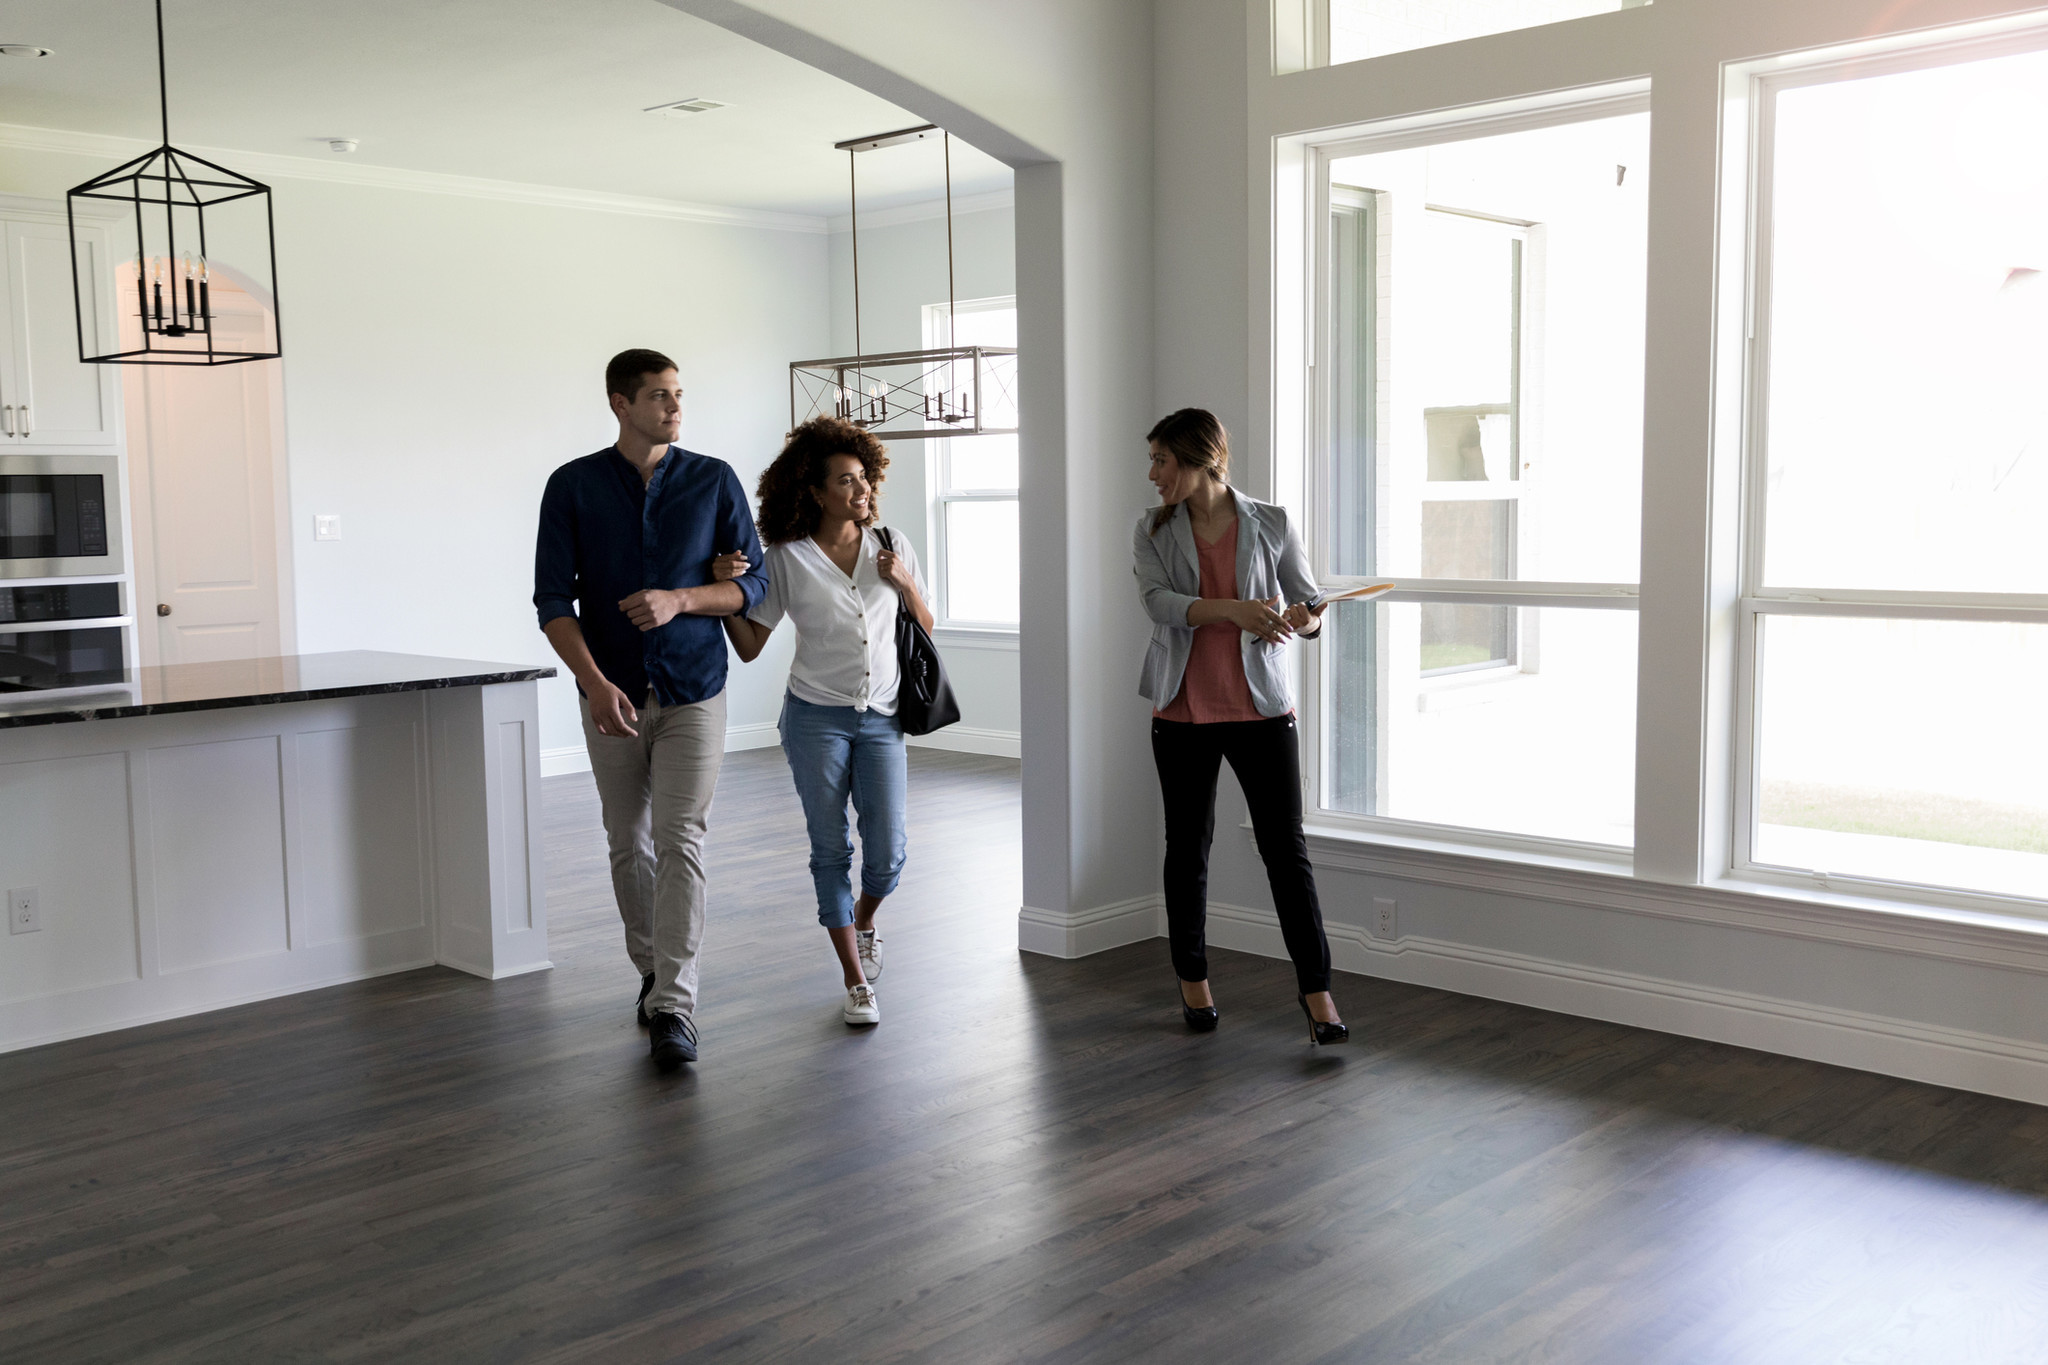 N.Y. judge temporarily blocks regulation doing away with broker fees for renters